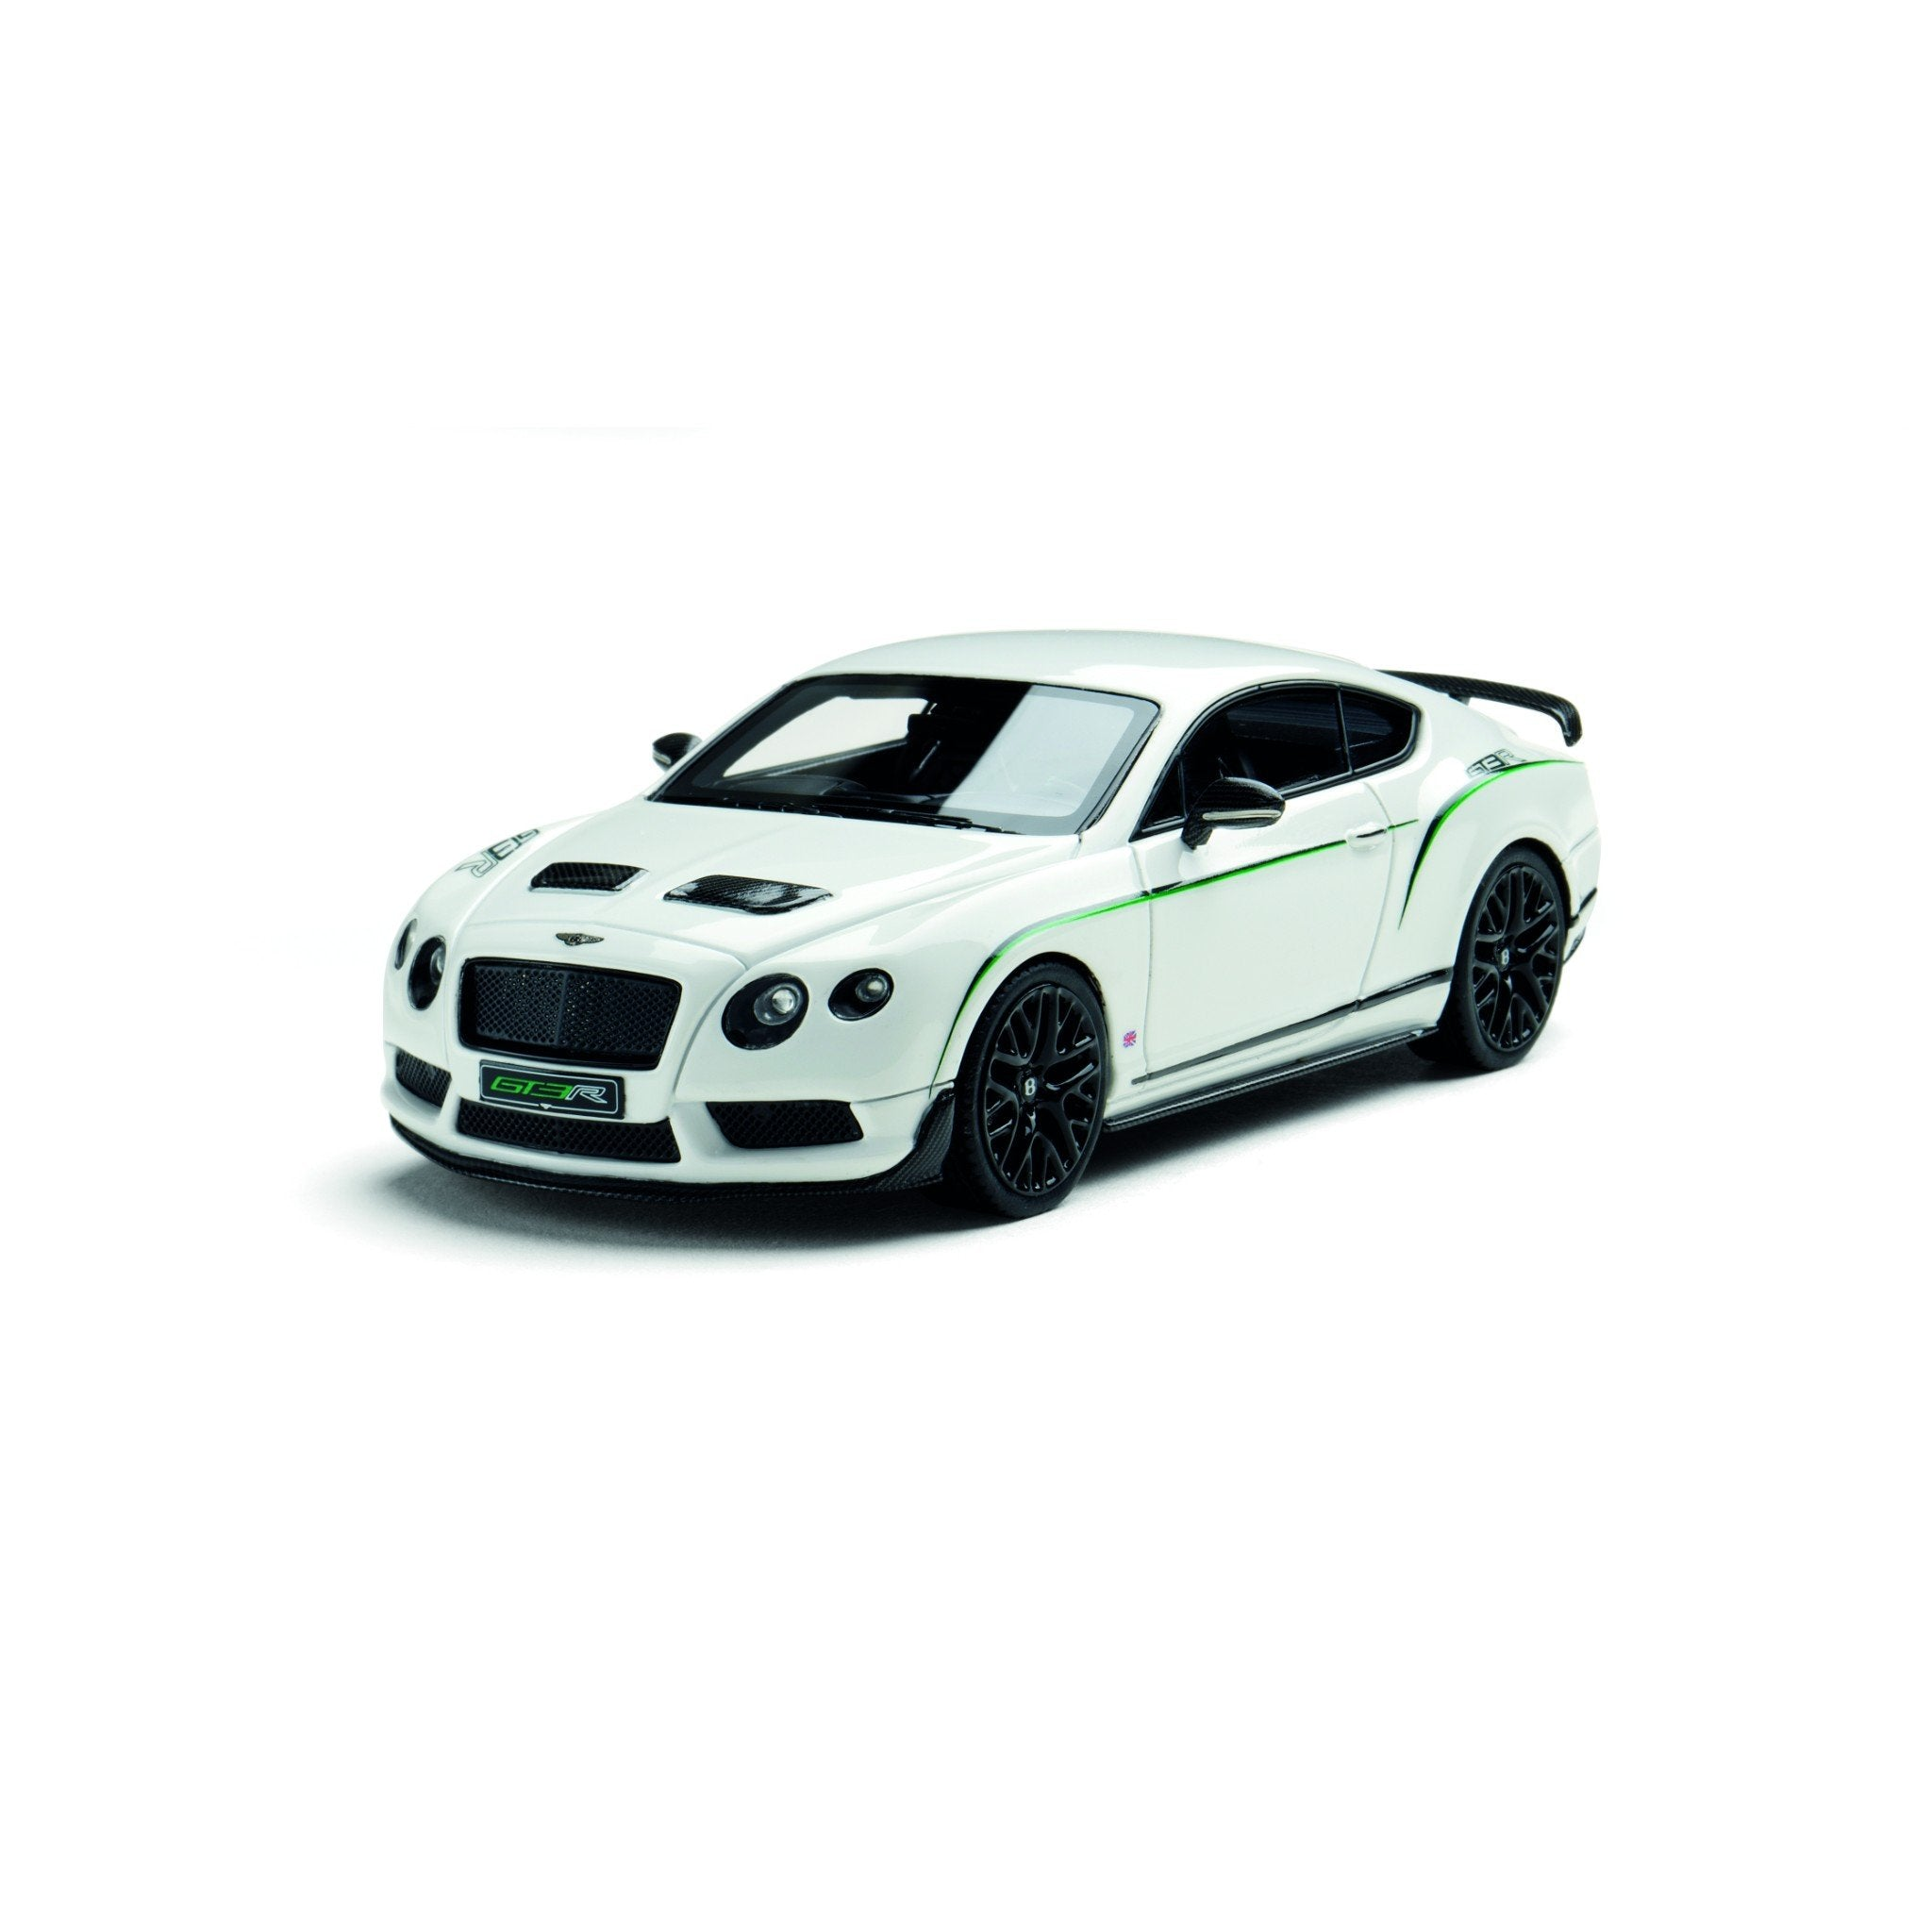 Bentley Continental Gt3 R: The Bentley Collection